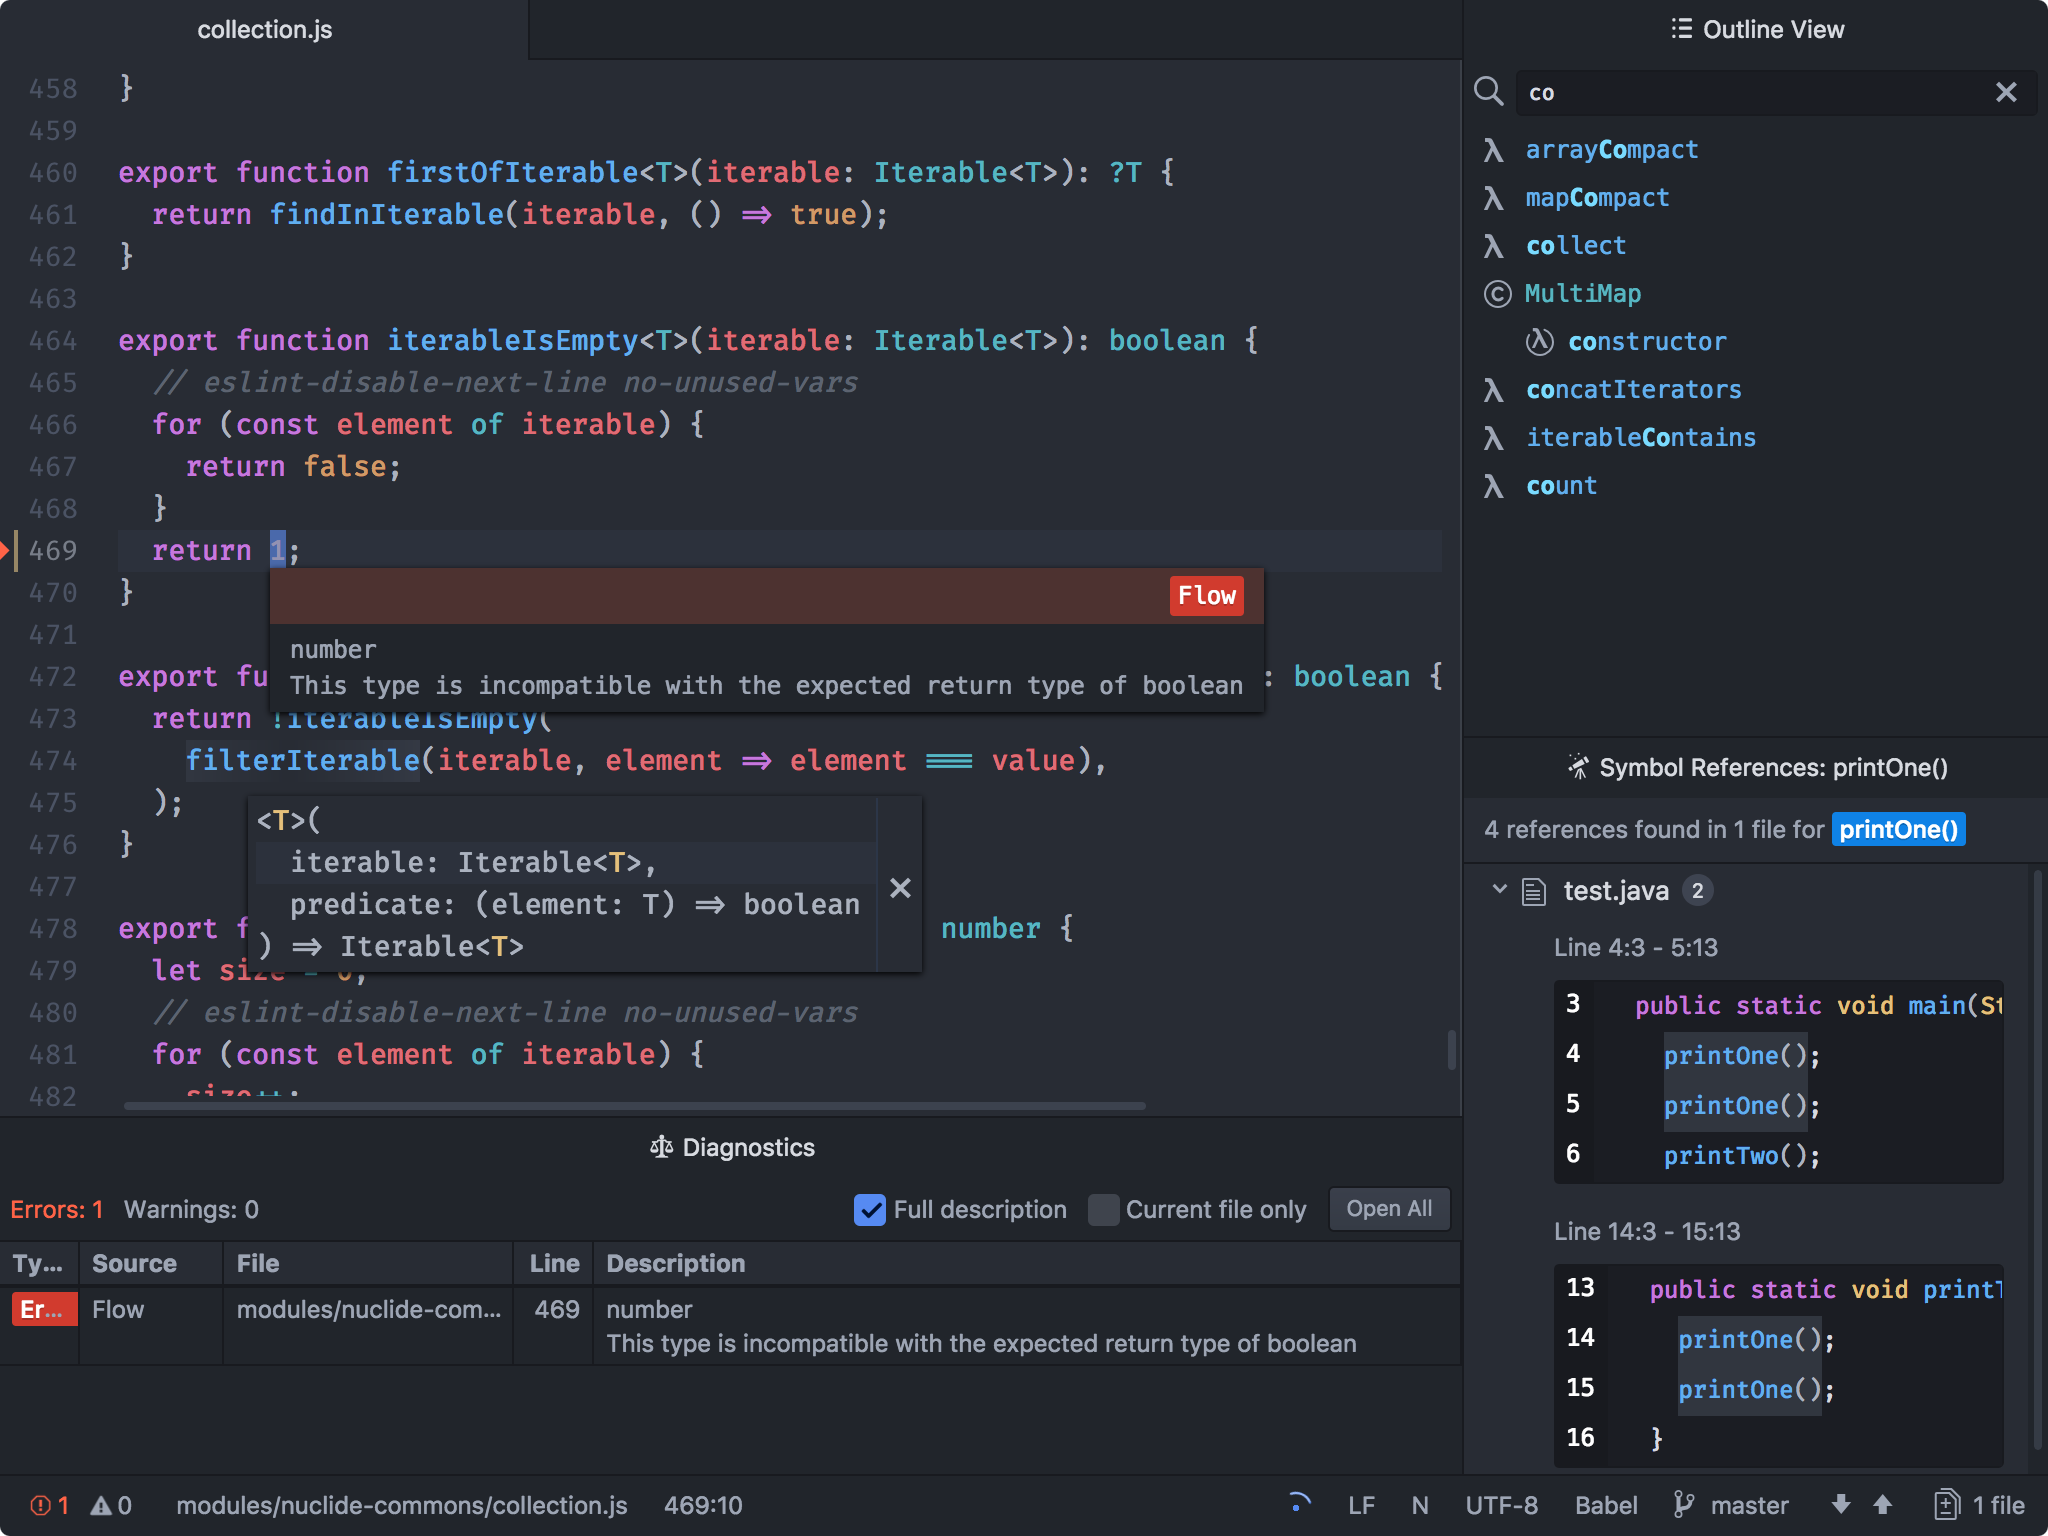 GitHub - facebookarchive/atom-ide-ui: A collection of user